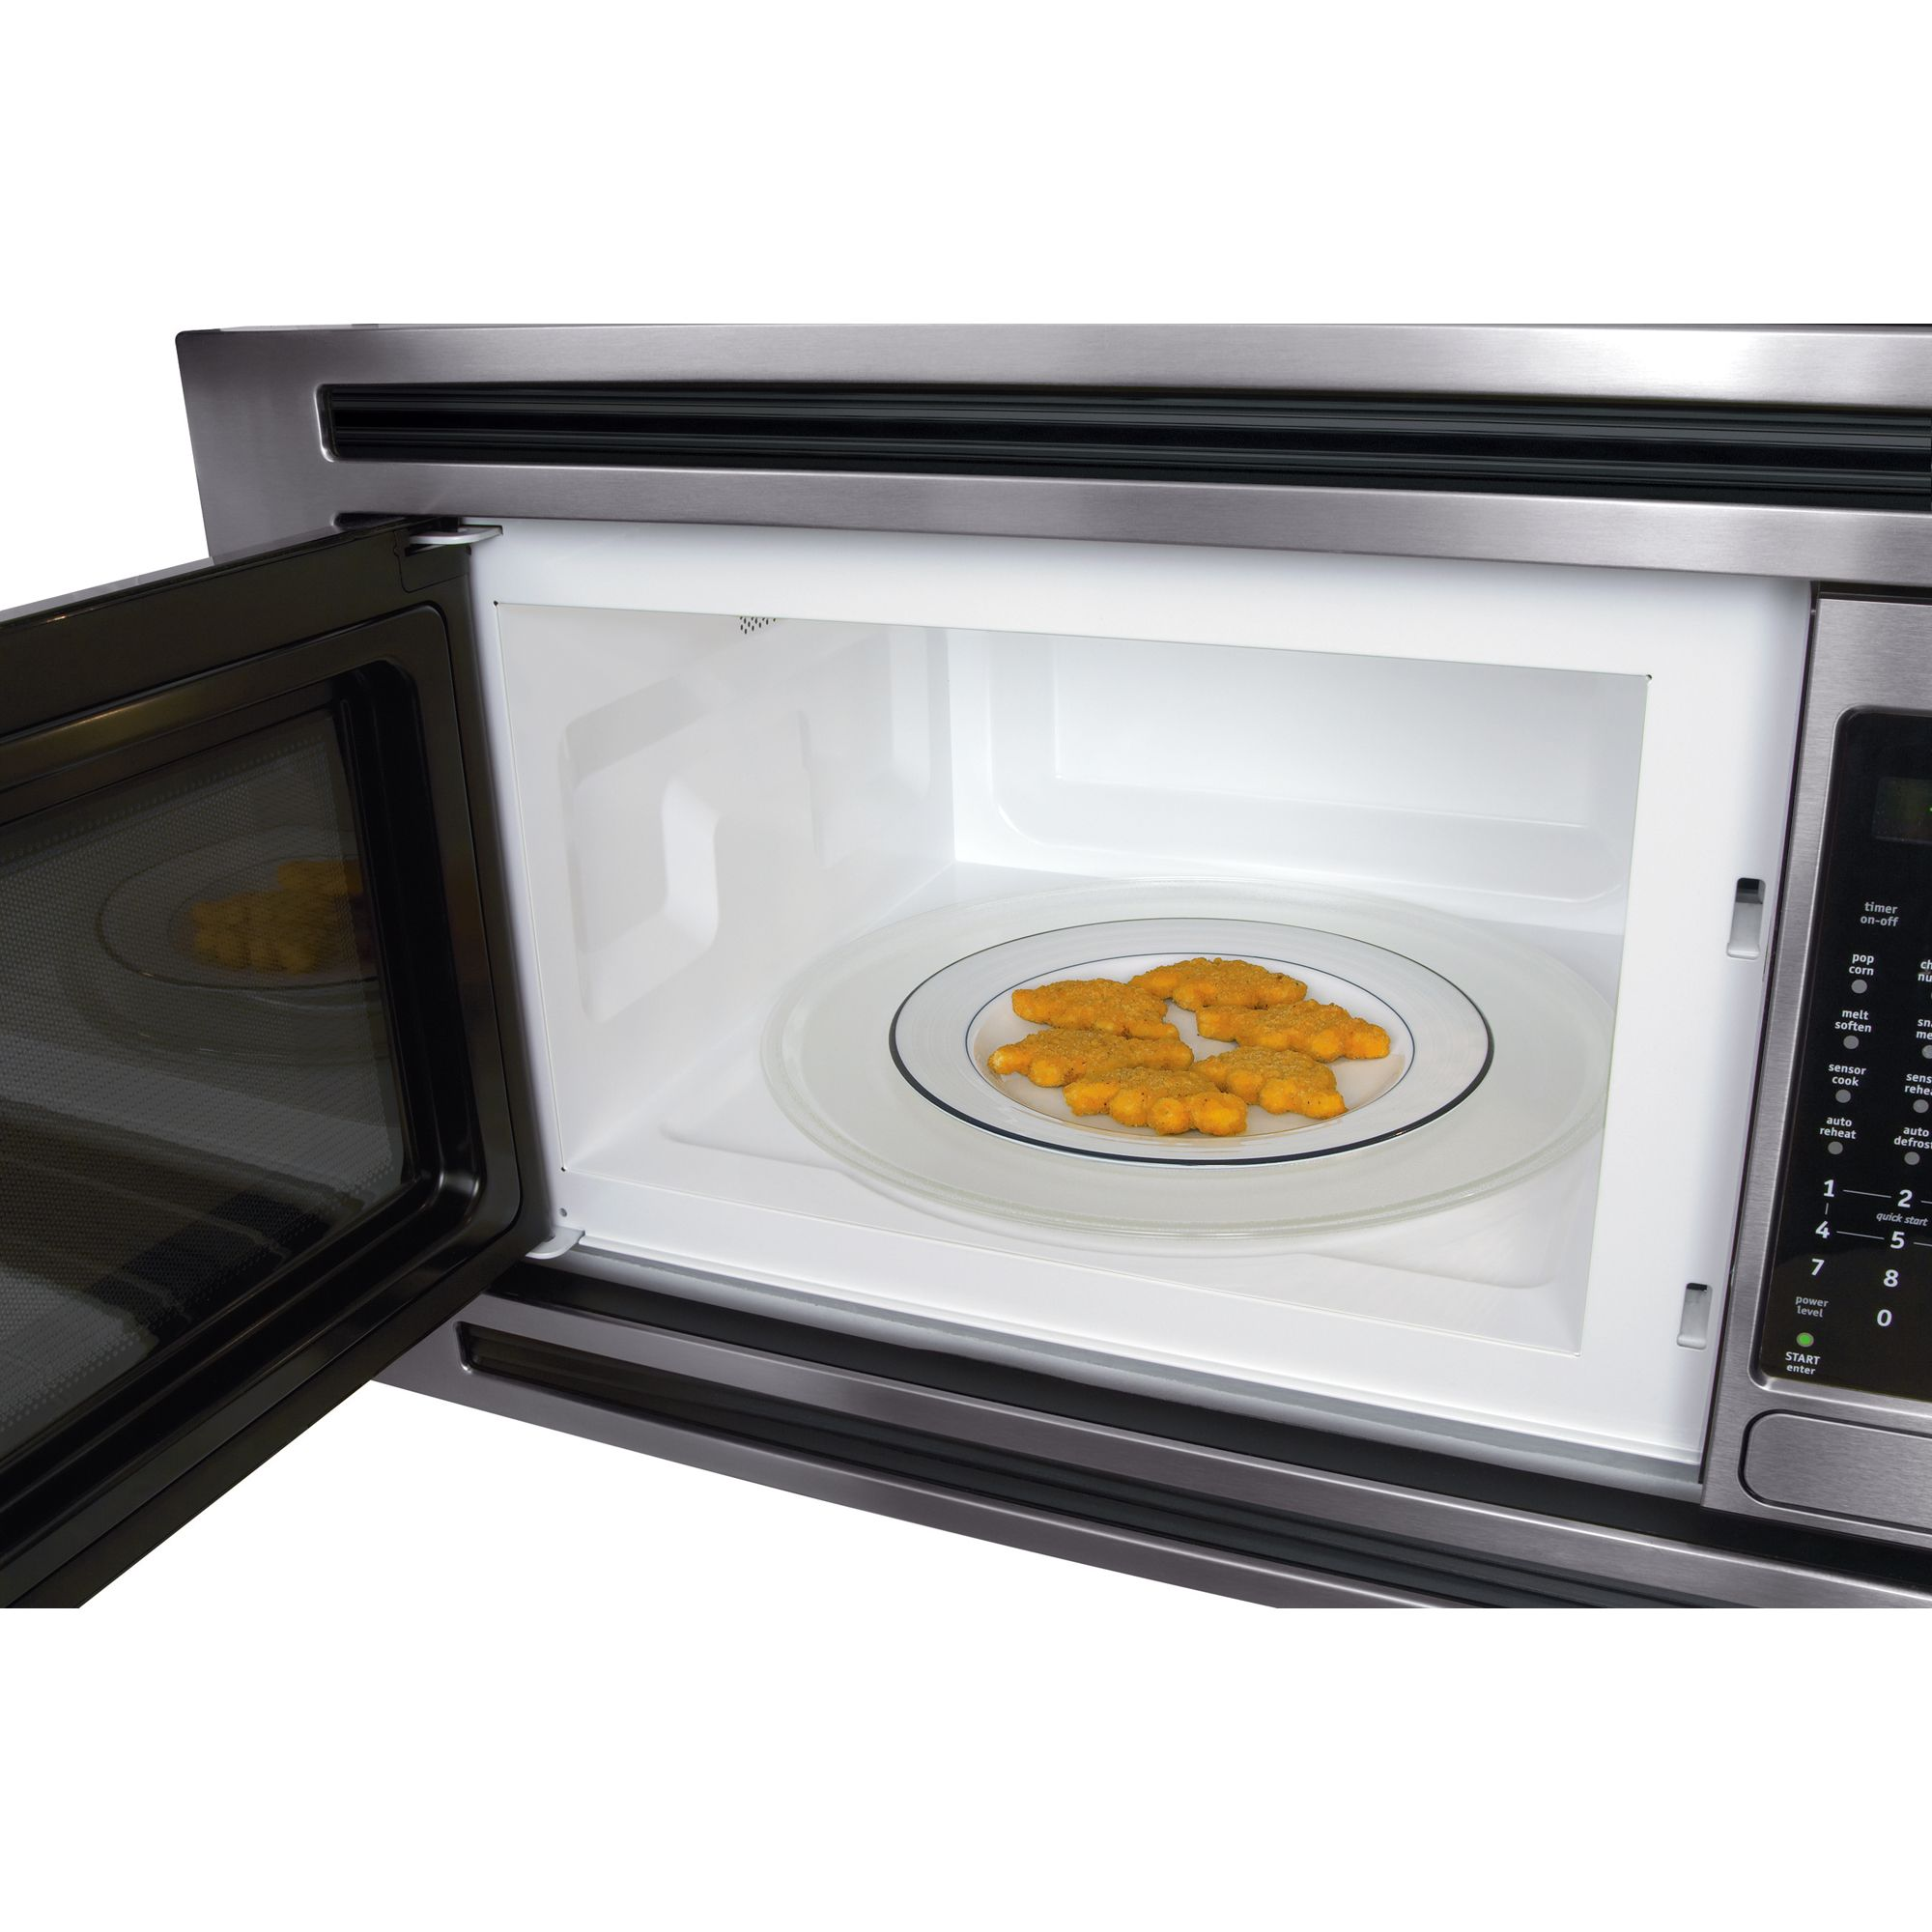 24 2 0 cu ft built in microwave oven